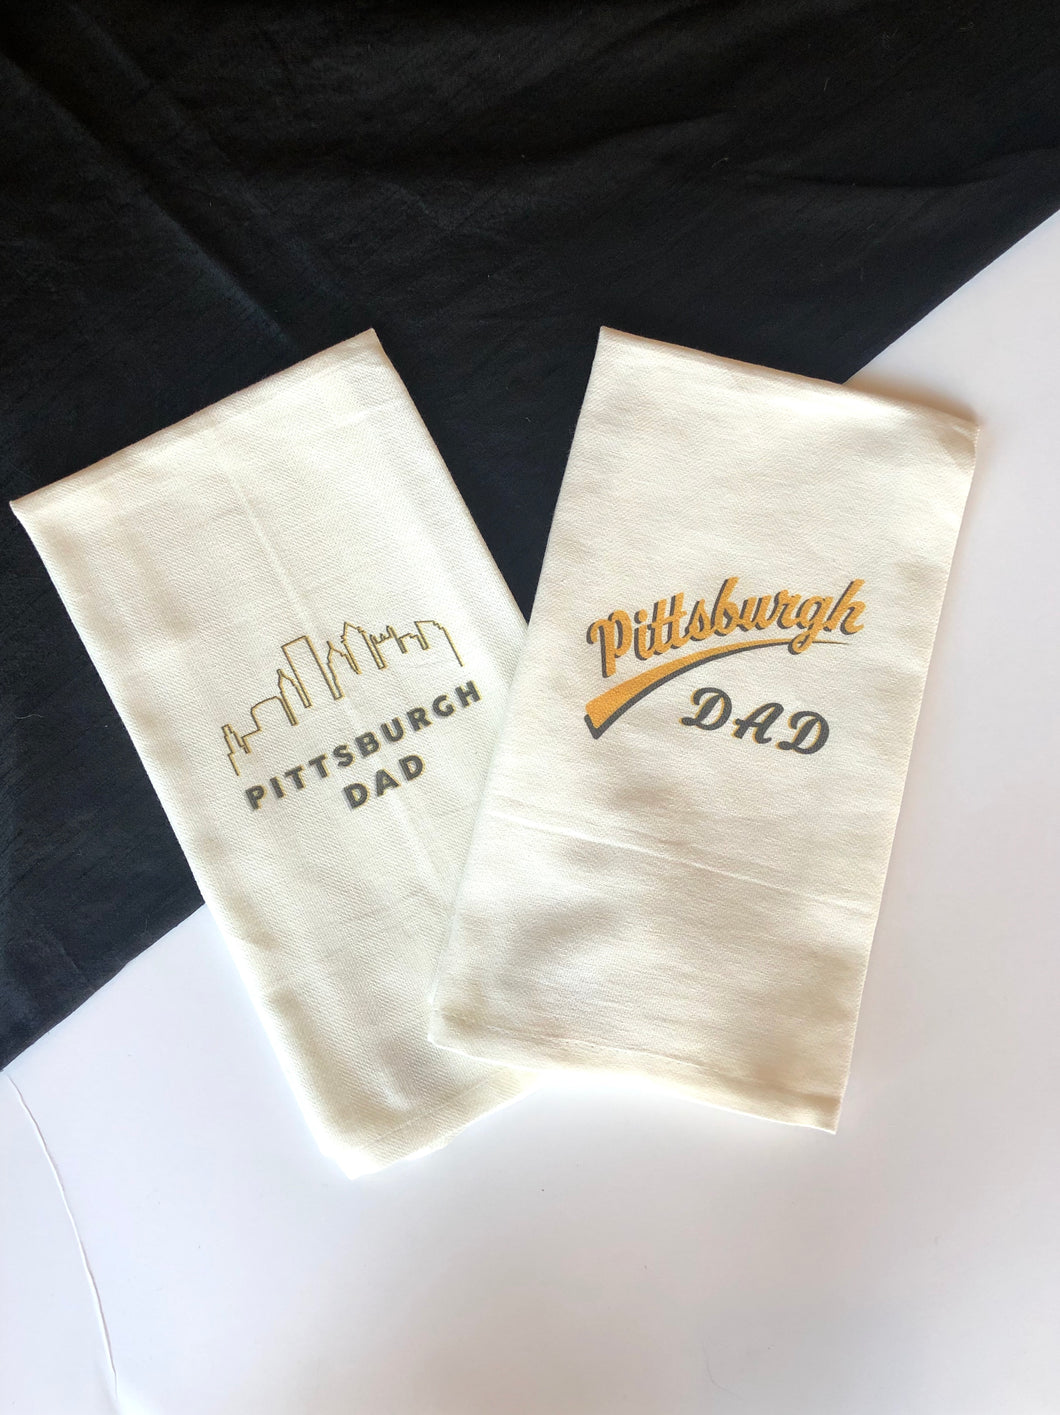 Pittsburgh Dad Tea Towels